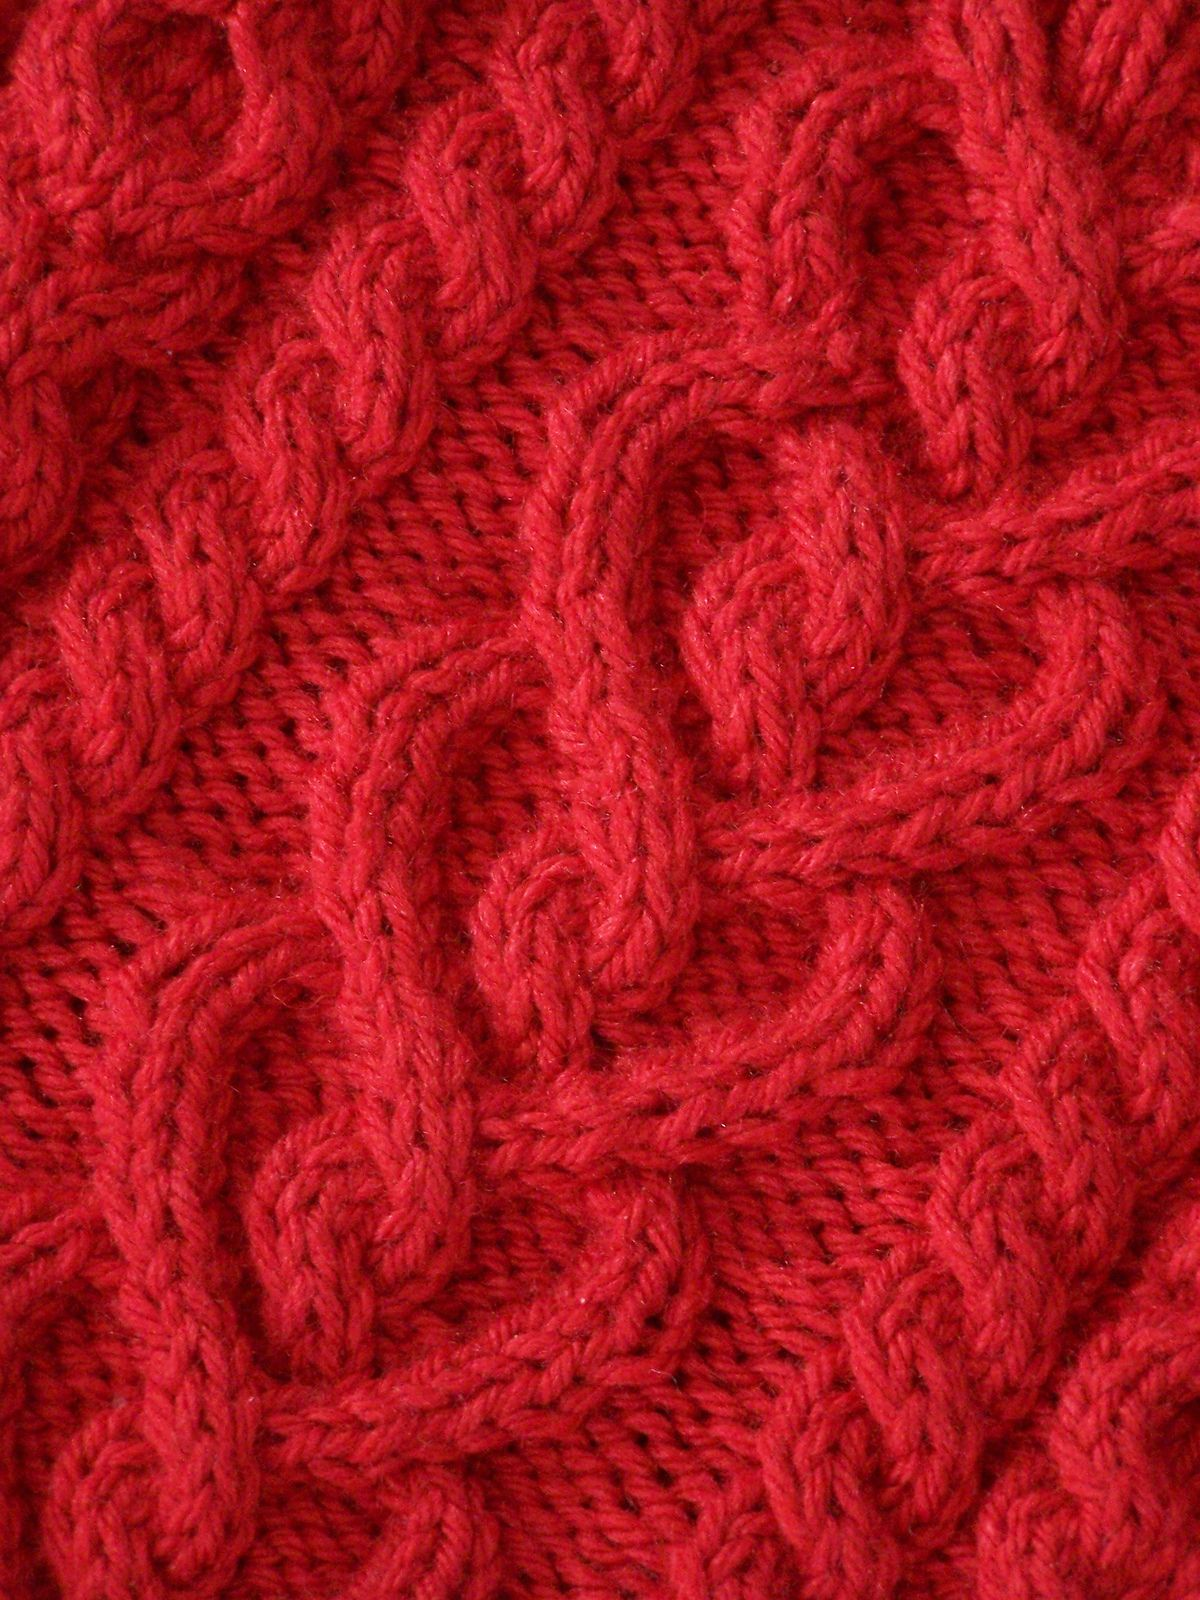 Ravelry love and kisses cowl by megan delorme ravelry love and kisses cowl pattern by megan delorme love the celtic heart motif bankloansurffo Image collections